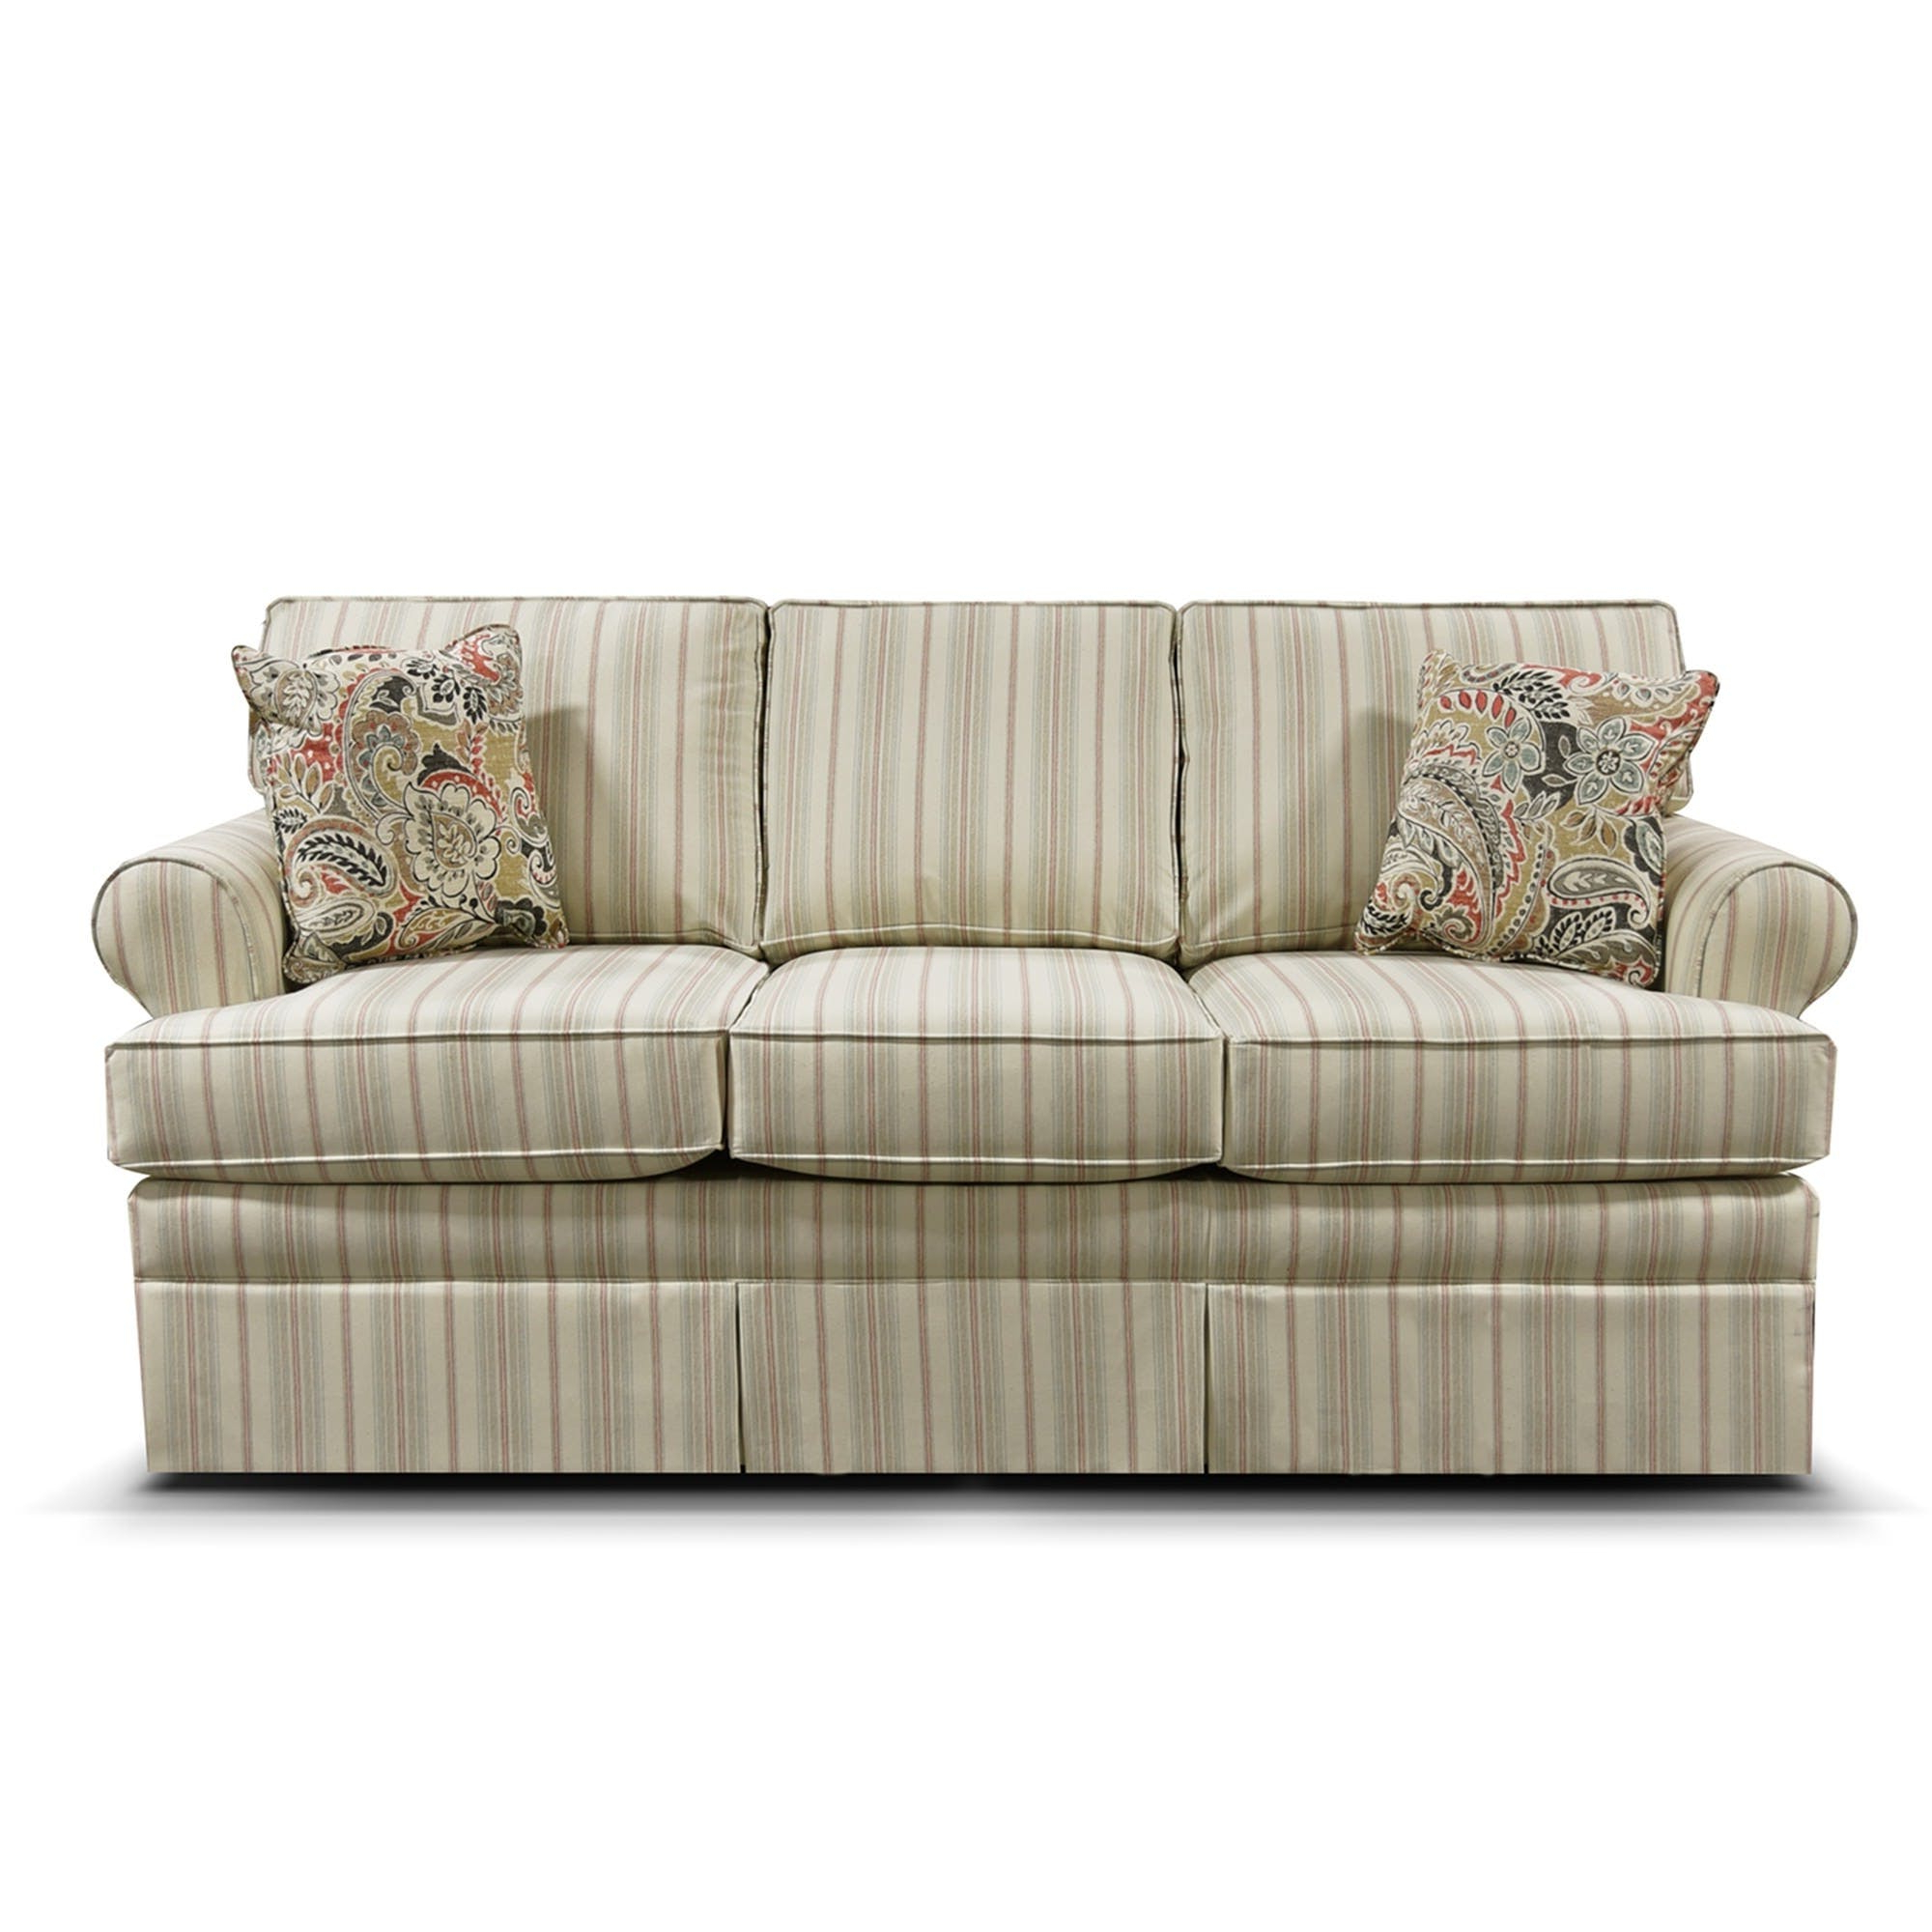 Grace Coral Sofa – Sunbrella Sofas – Sunbrella Fabrics – Furniture Regarding Popular Grace Sofa Chairs (Gallery 4 of 20)